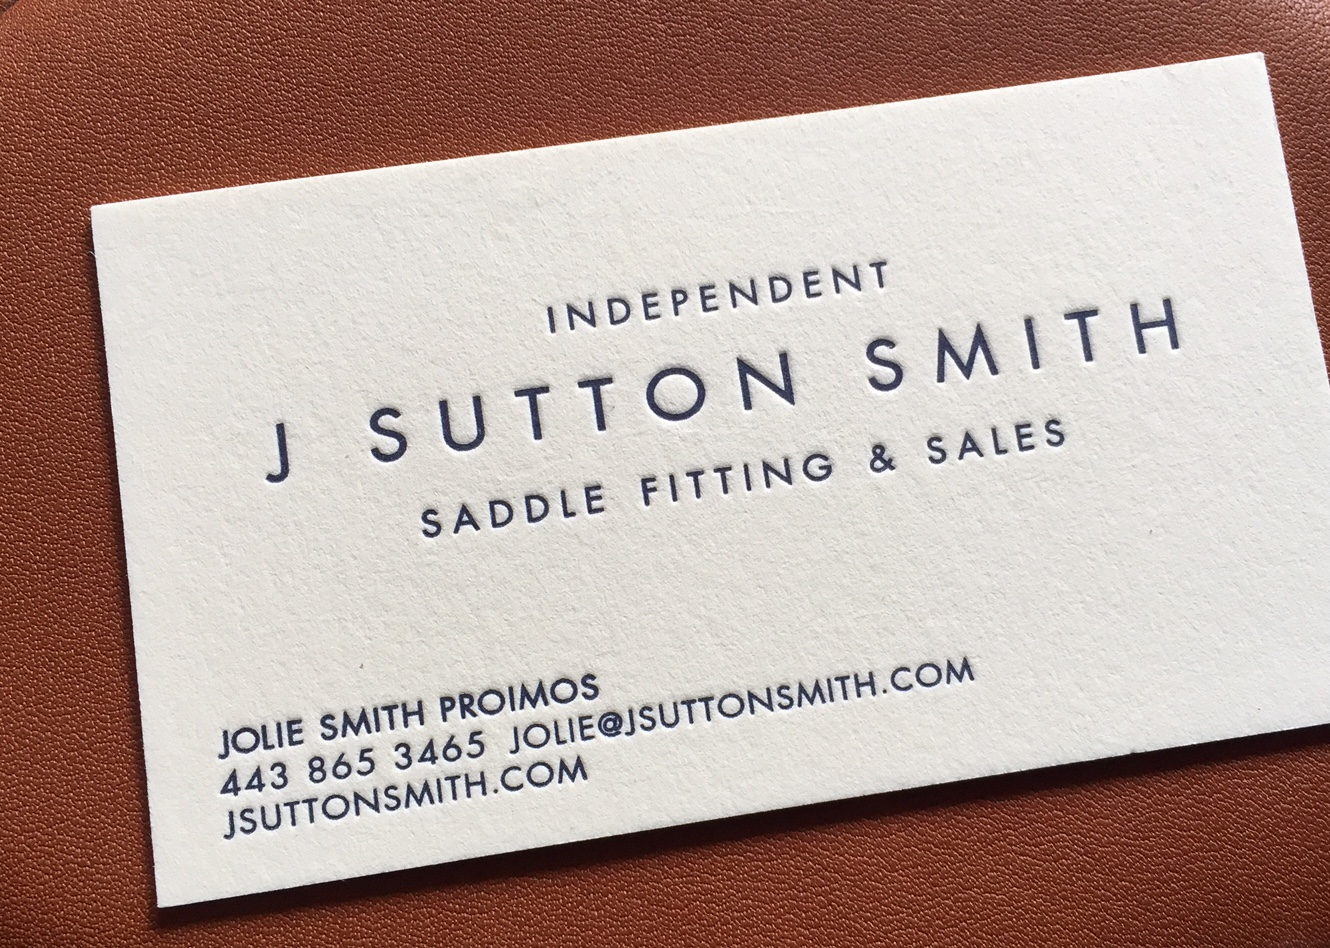 J Sutton Smith Identity